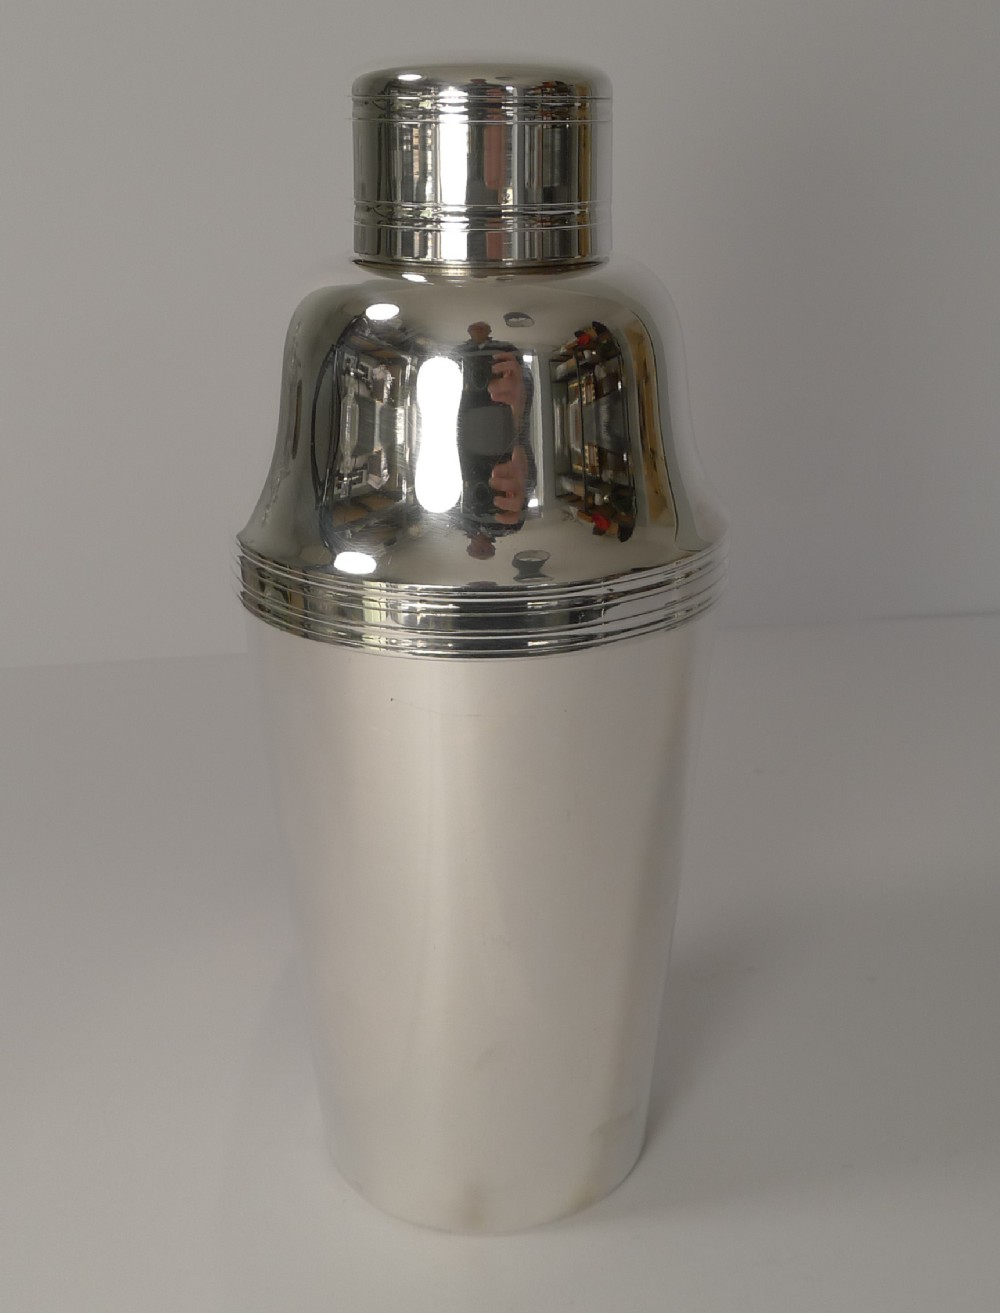 french art deco silver plated cocktail shaker circa 1930 by orbrille paris